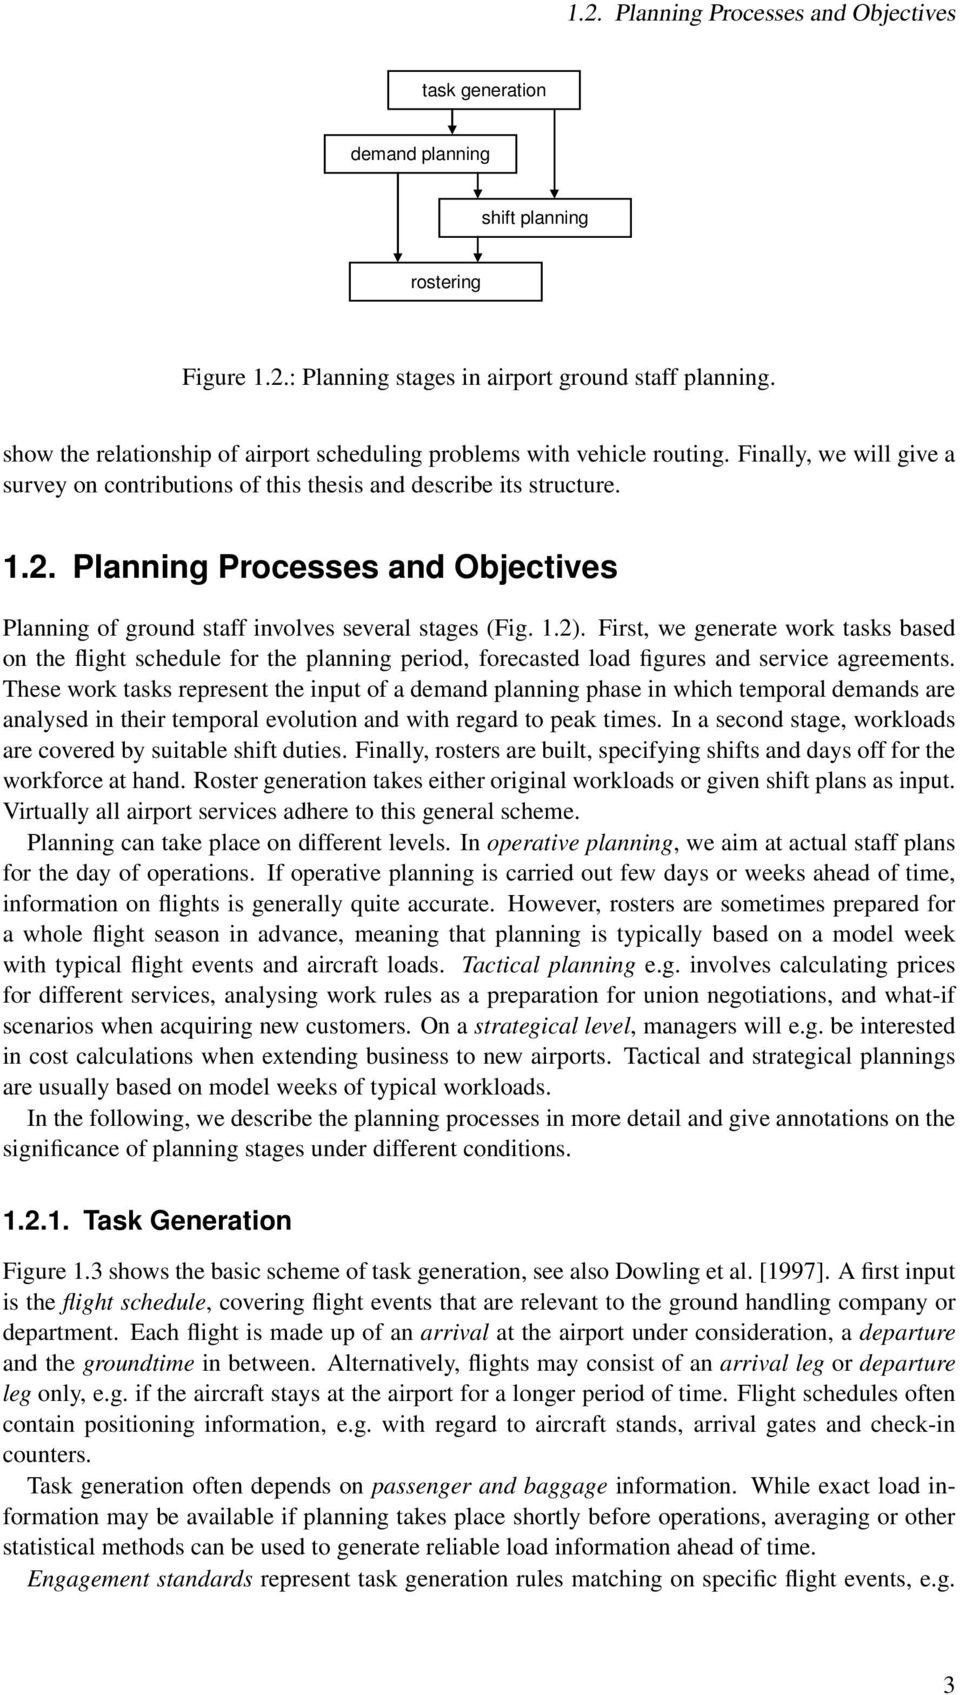 Plannng Processes and Objectves Plannng of ground staff nvolves several stages (Fg. 1.2).